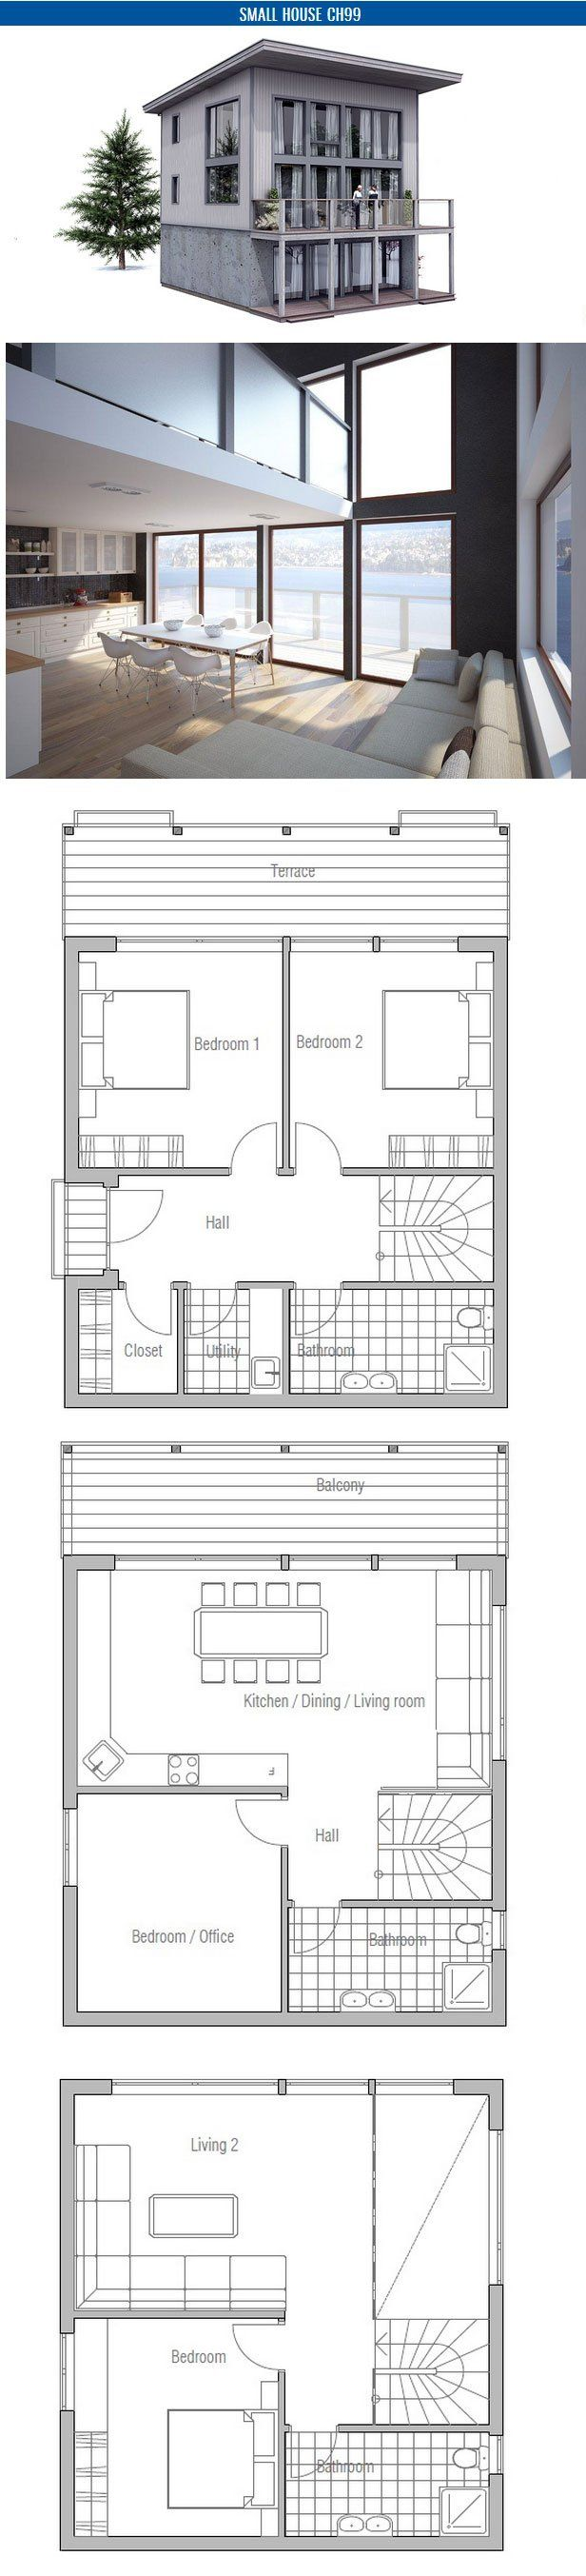 Perfect Hd Simple Home Plans With Scale 89 extraordinary 3 bedroom floor plans home design Small House Plan With Four Bedrooms Simple Lines And Shapes Affordable Building Budget